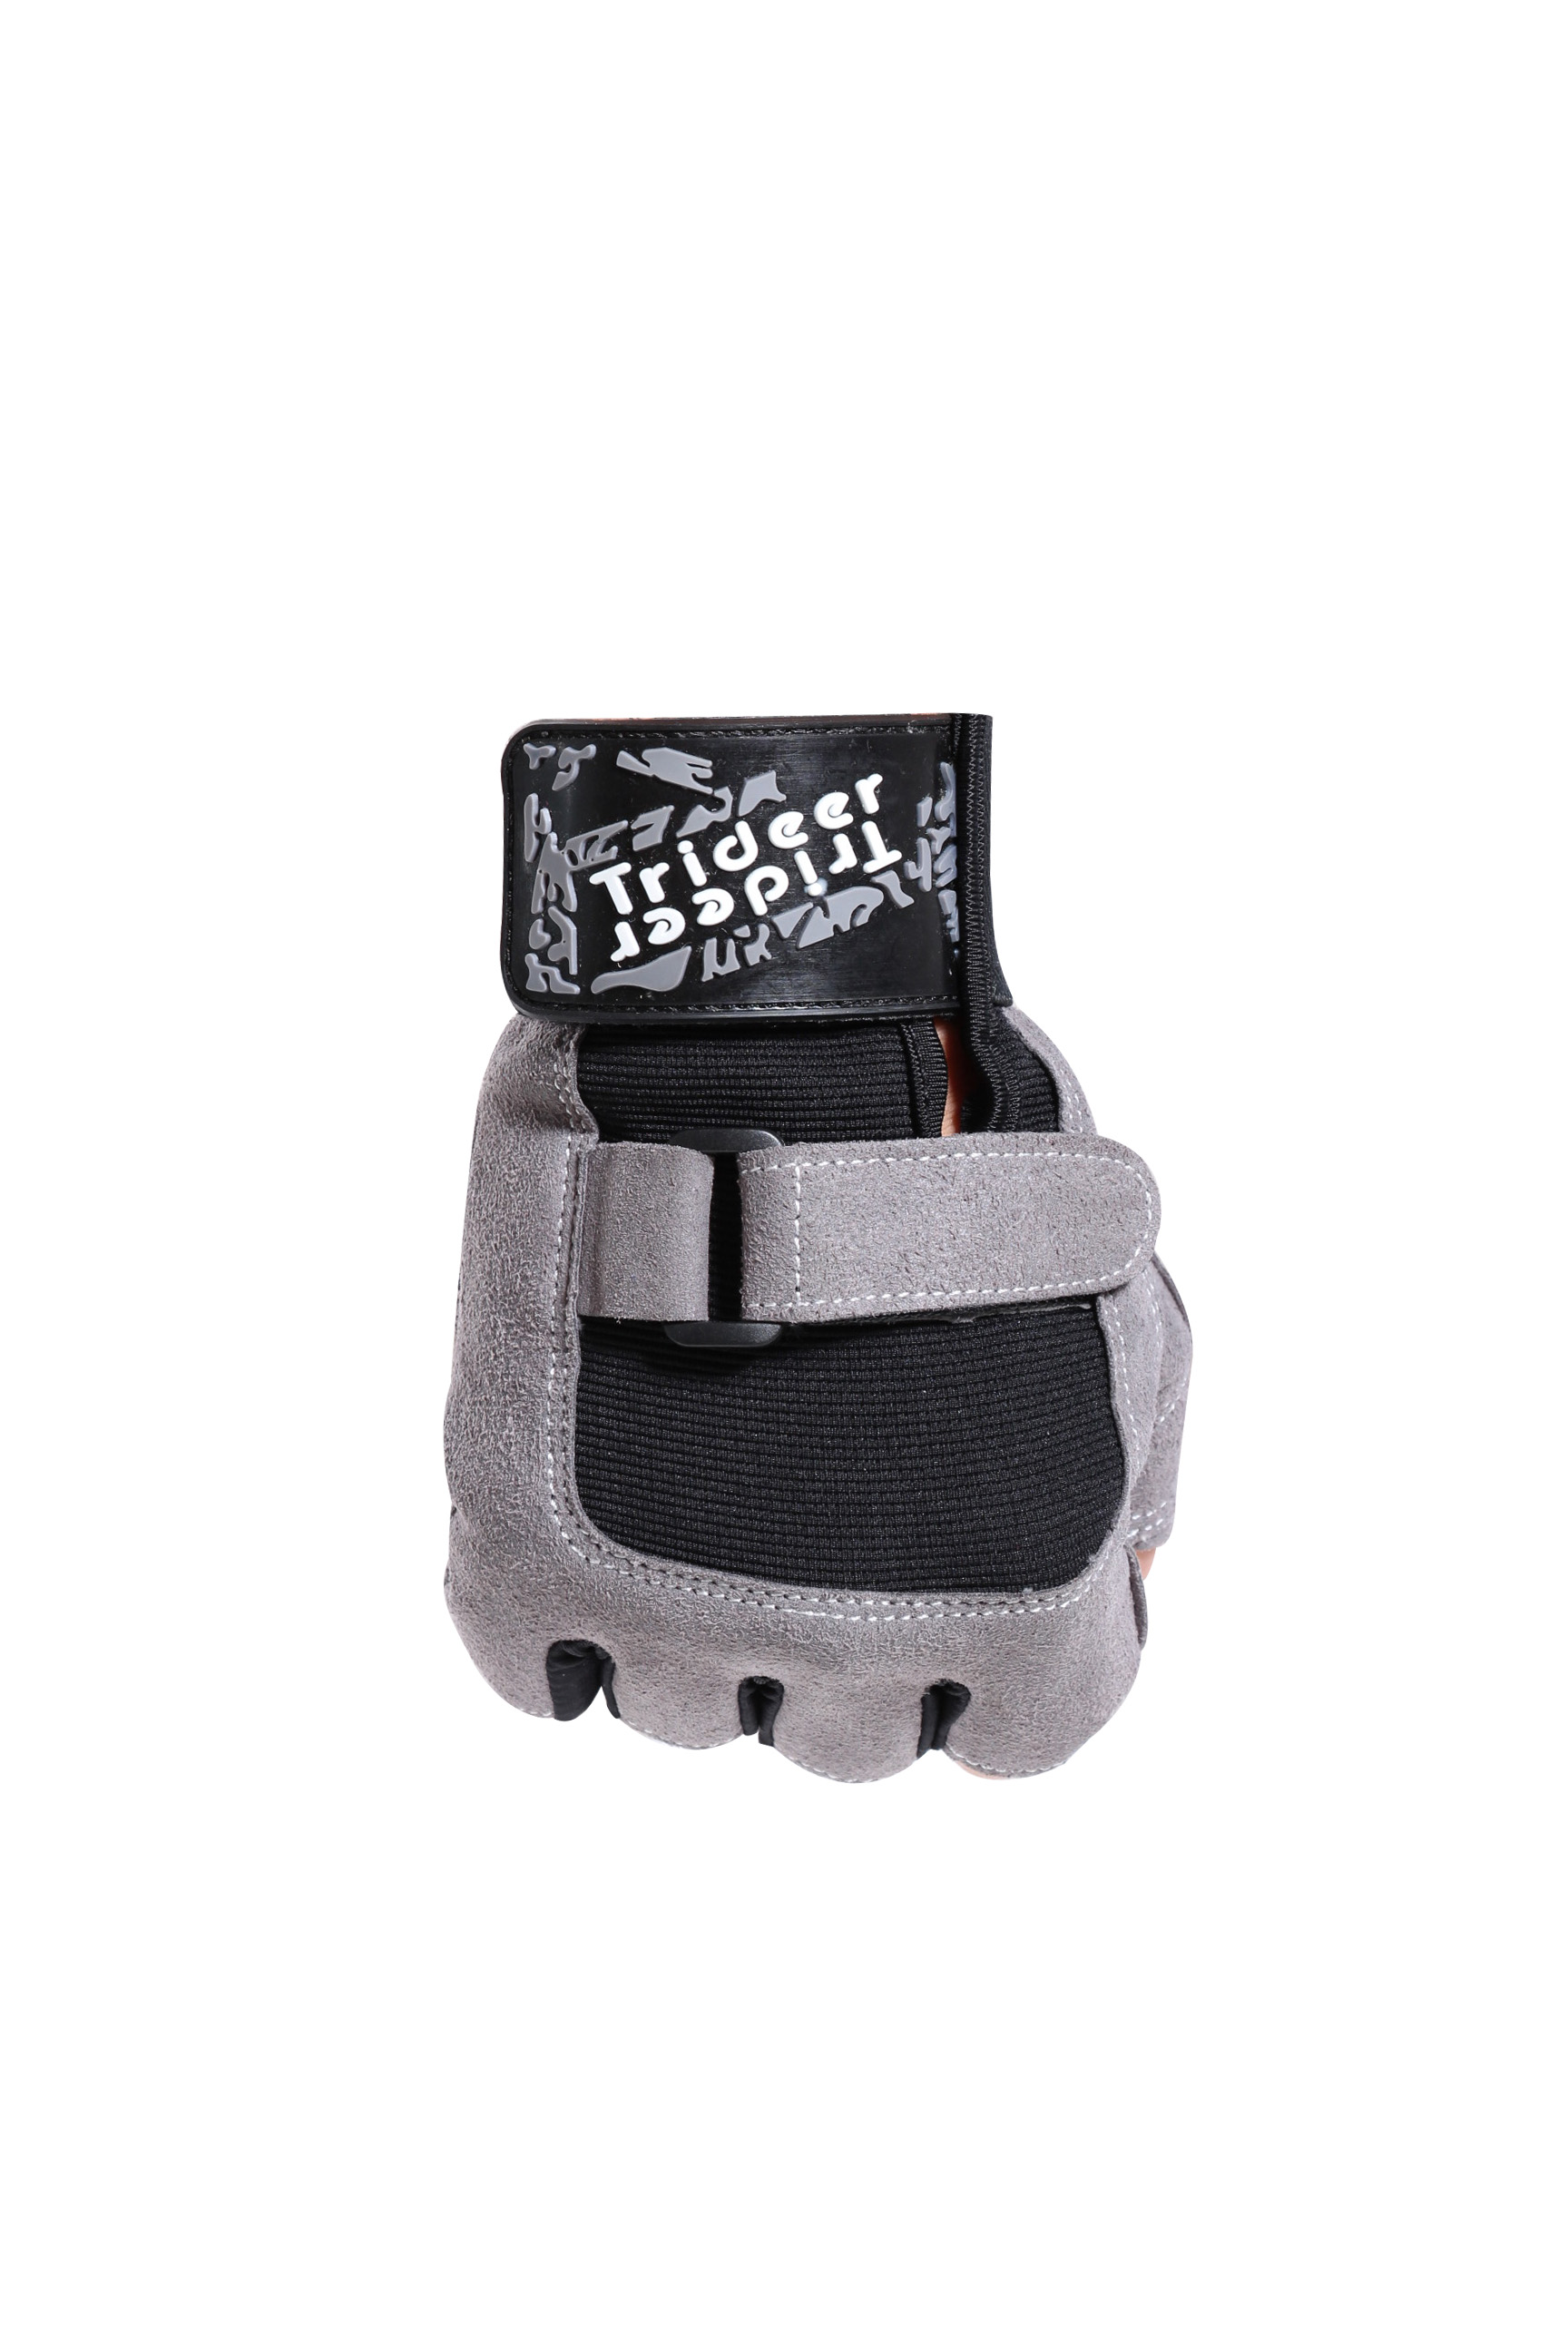 soft half finger bicycle buckle gloves